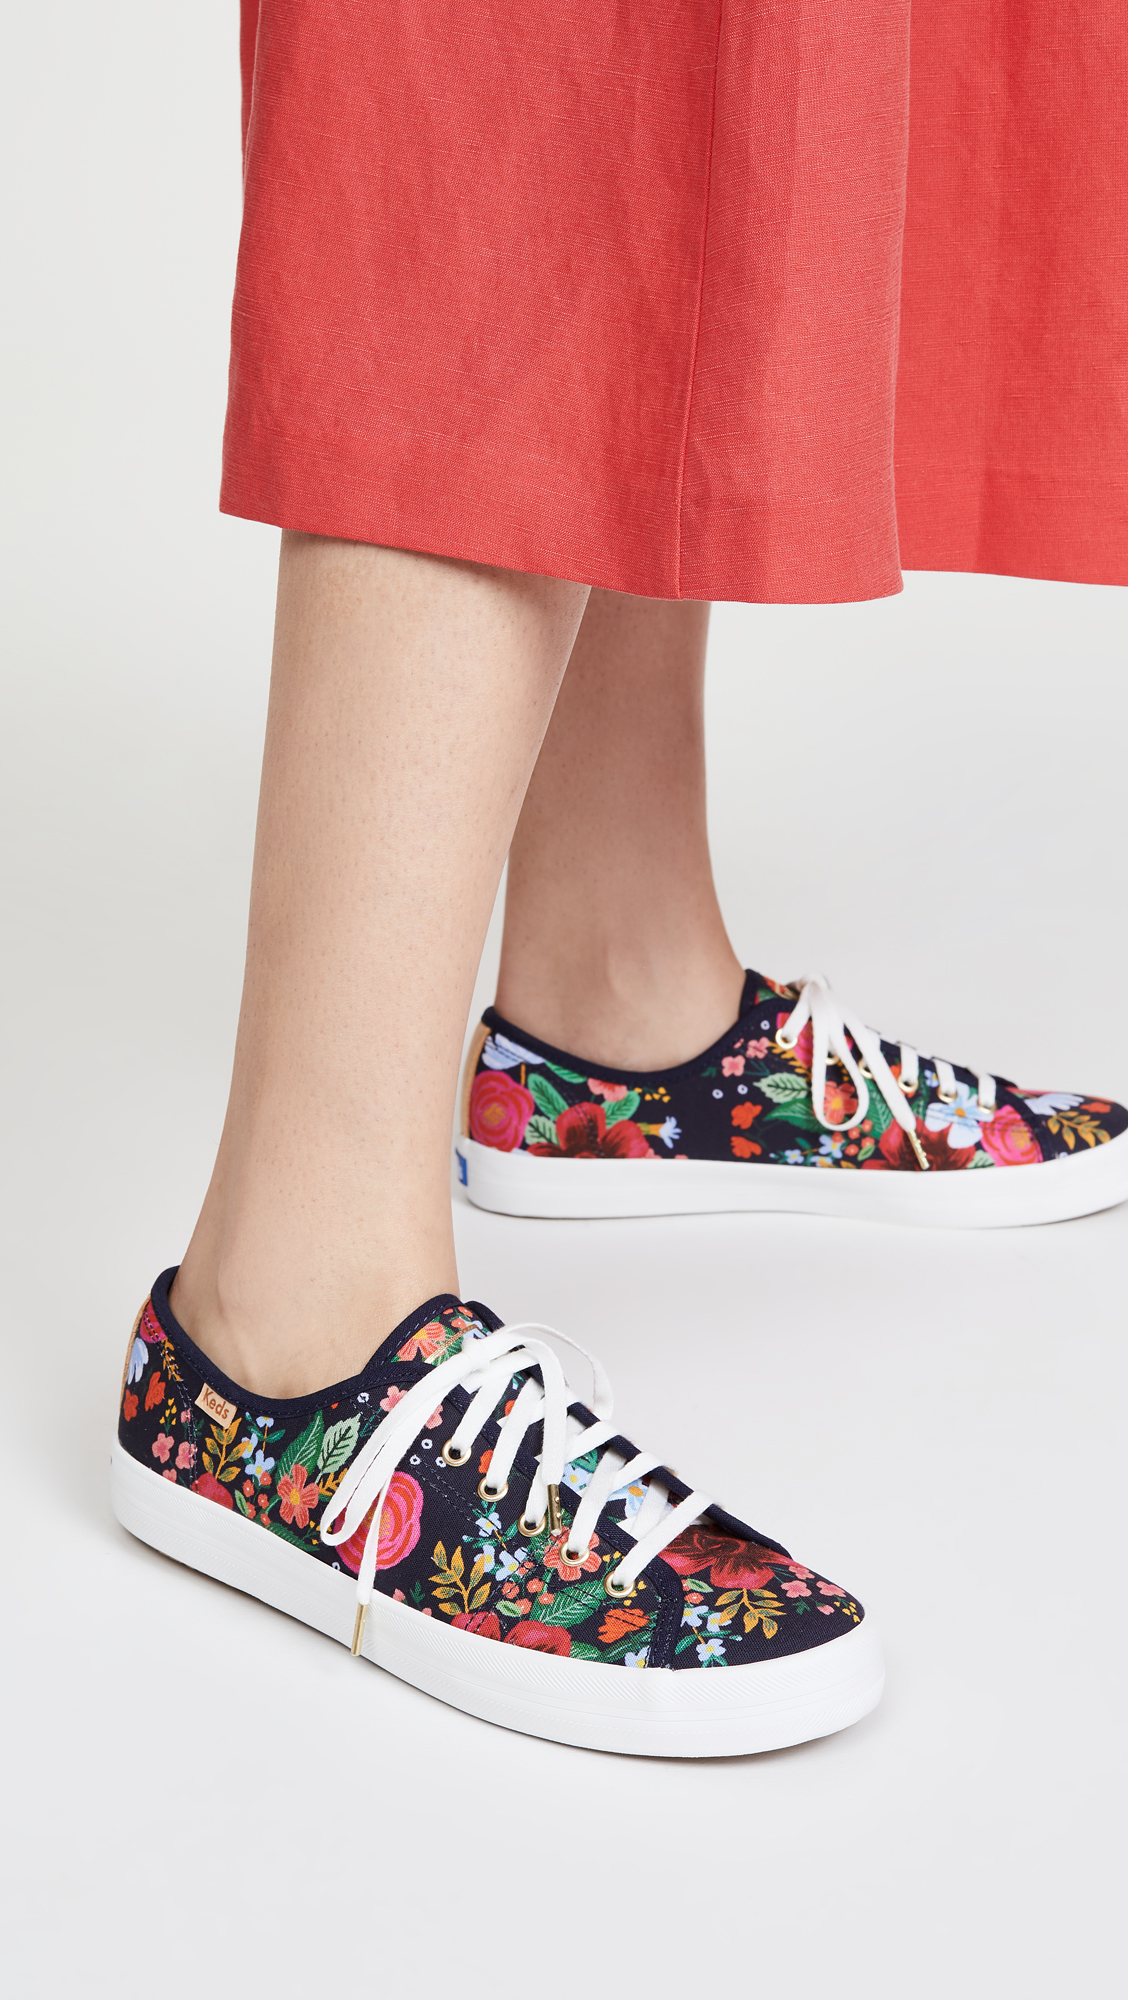 Keds x Rifle Paper Co Kickstart Wild Rose Sneakers